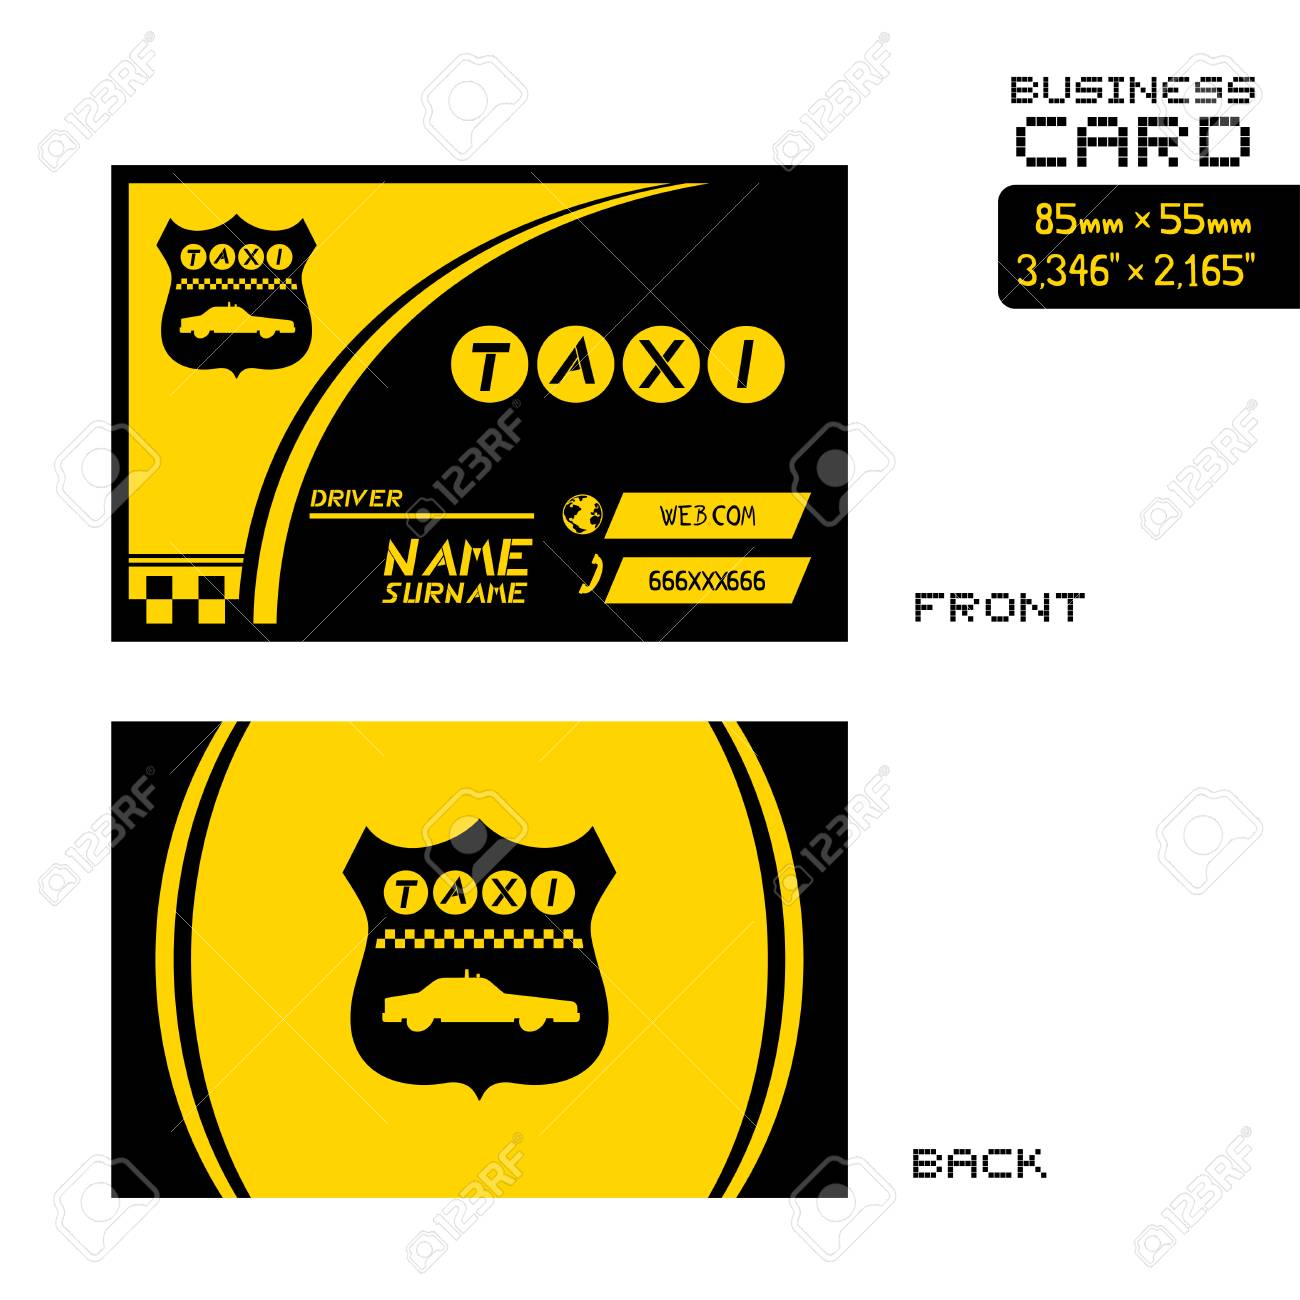 Taxi Business Card Royalty Free Cliparts Vectors And Stock